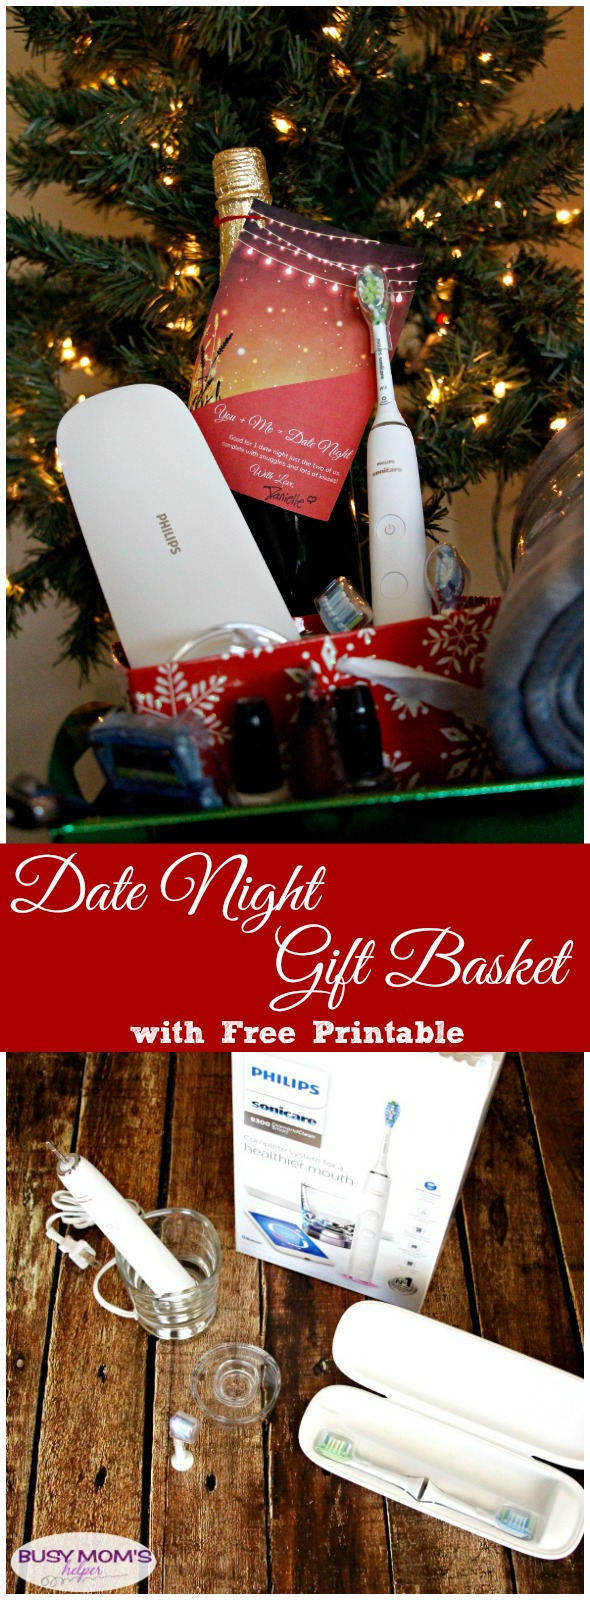 Date Night Gift Basket with Free Printable Gift Tag #AD #WorldsSmartestToothbrush #PhilipsSonicare #OprahsFavoriteThings